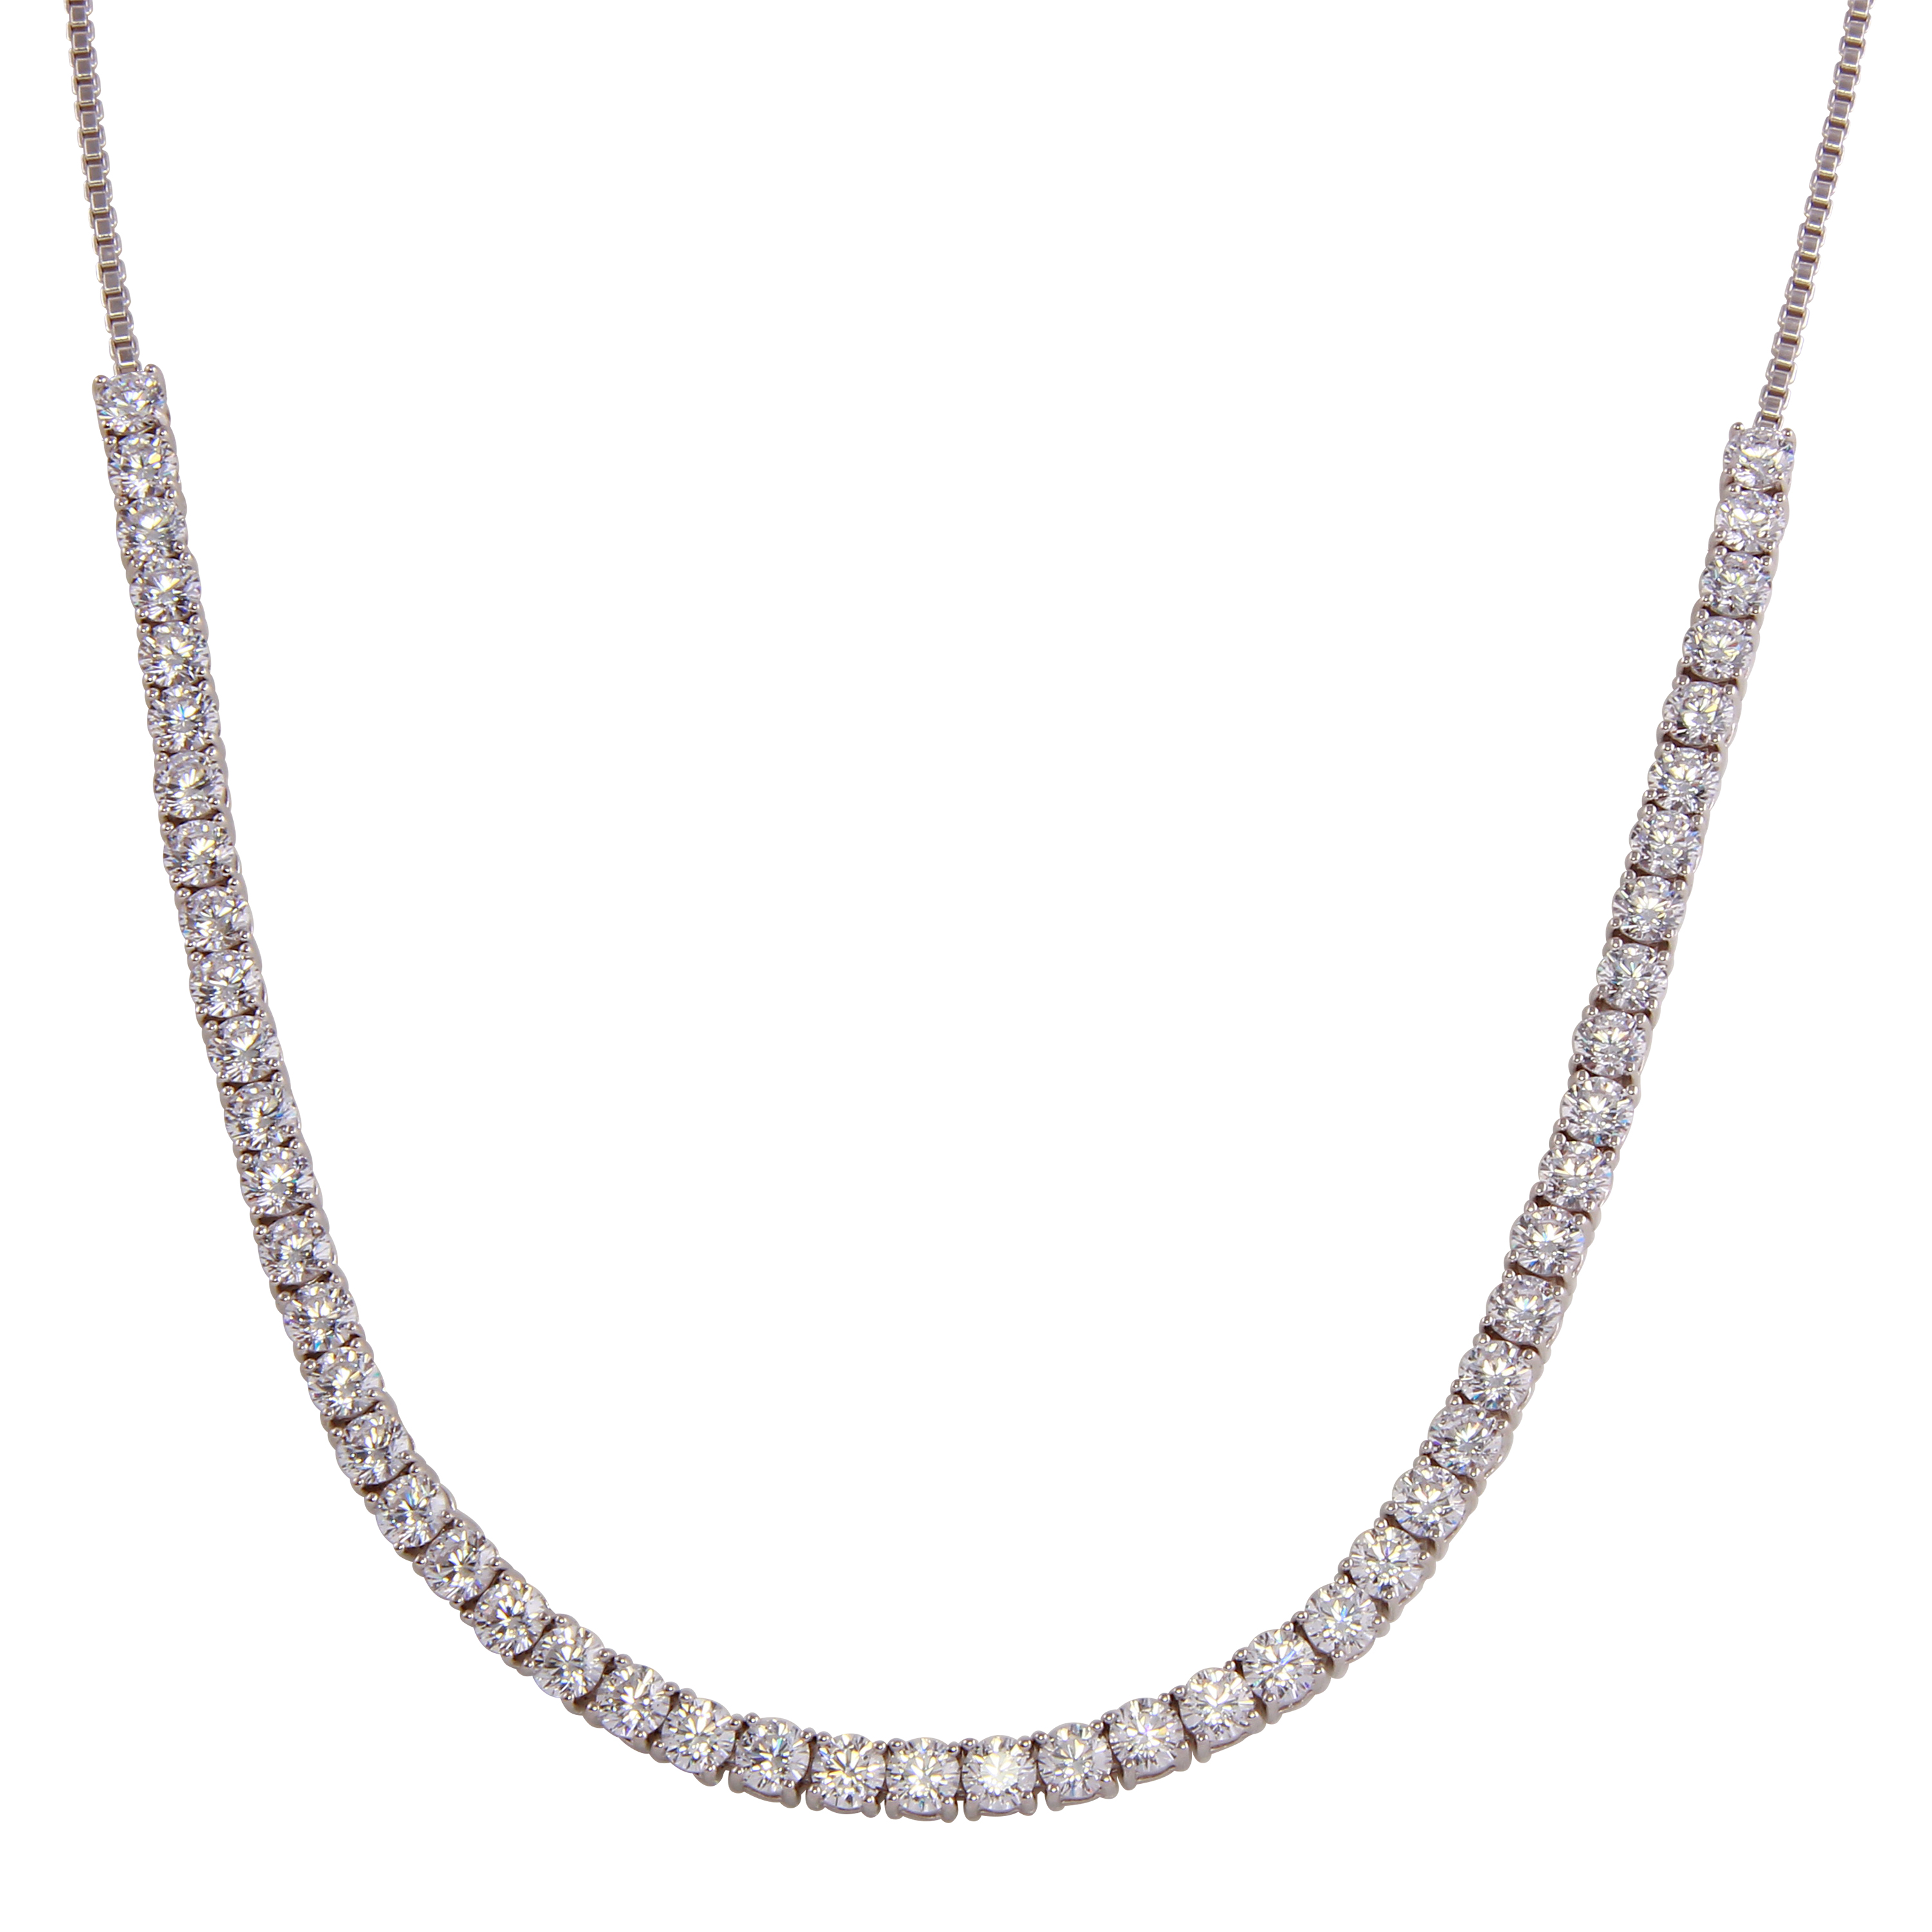 Wholesale Sterling Silver 925 Rhodium Plated Adjustable Tennis CZ Necklace - BGP01257